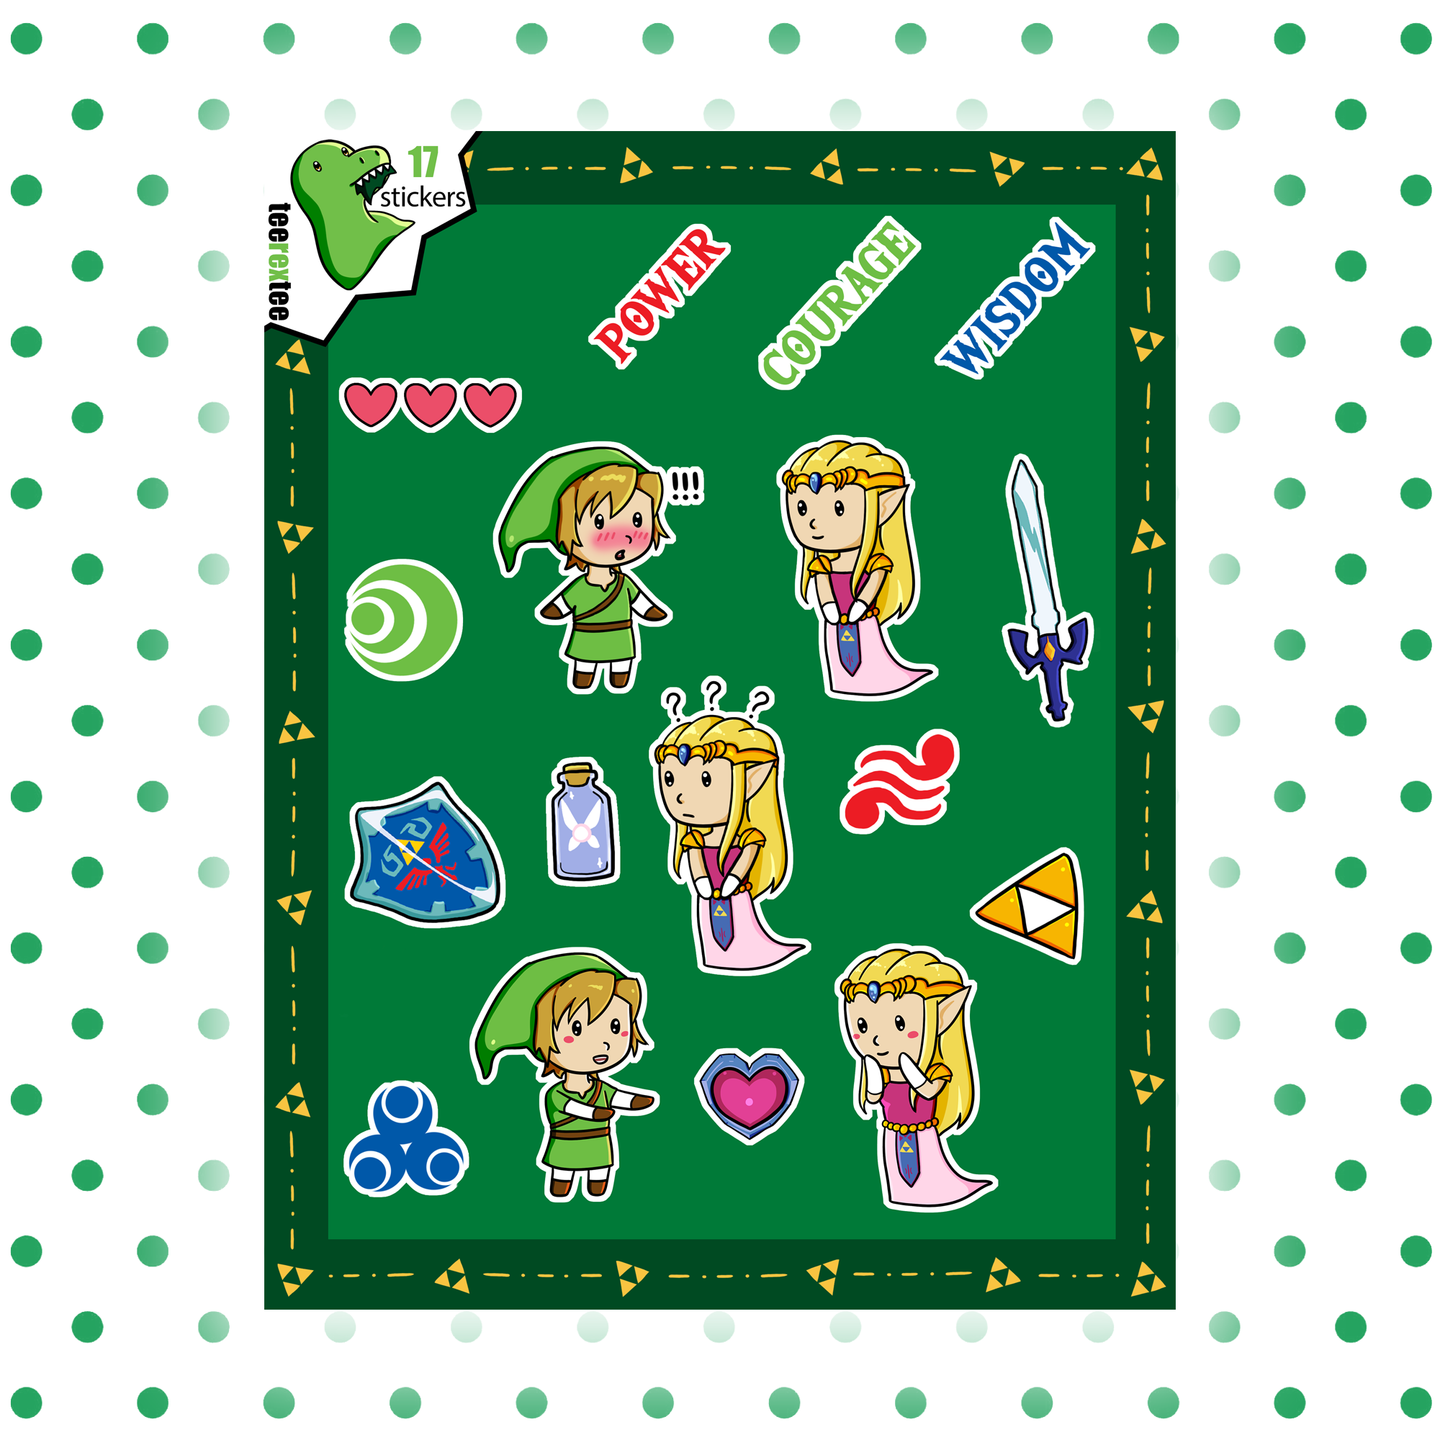 Link and Zelda Stickers - Legend of Zelda Sticker Set